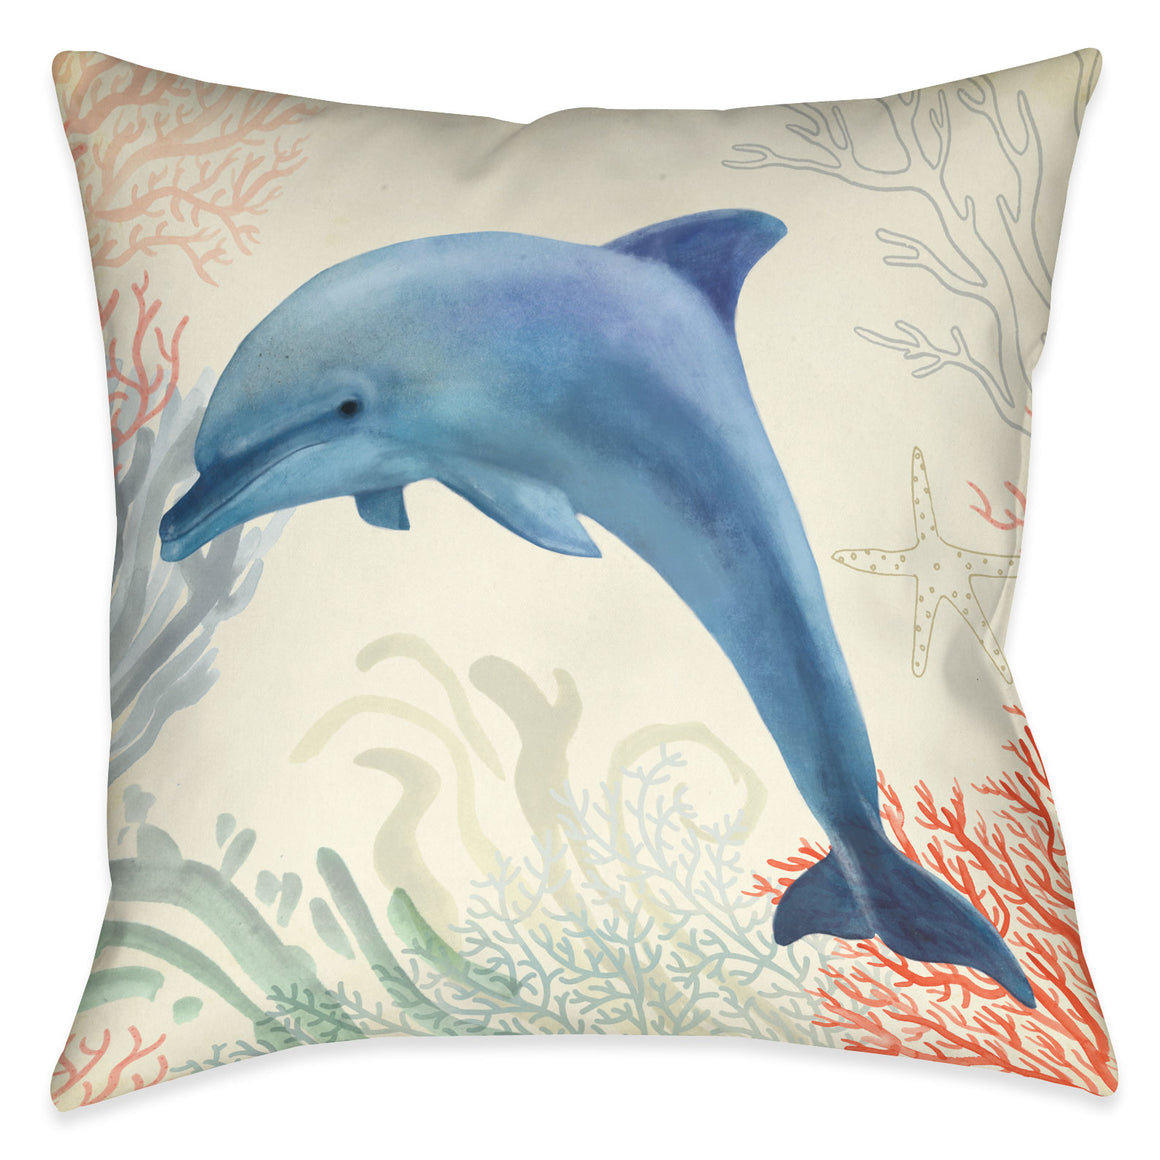 Ocean Whimsy Dolphin Outdoor Decorative Pillow